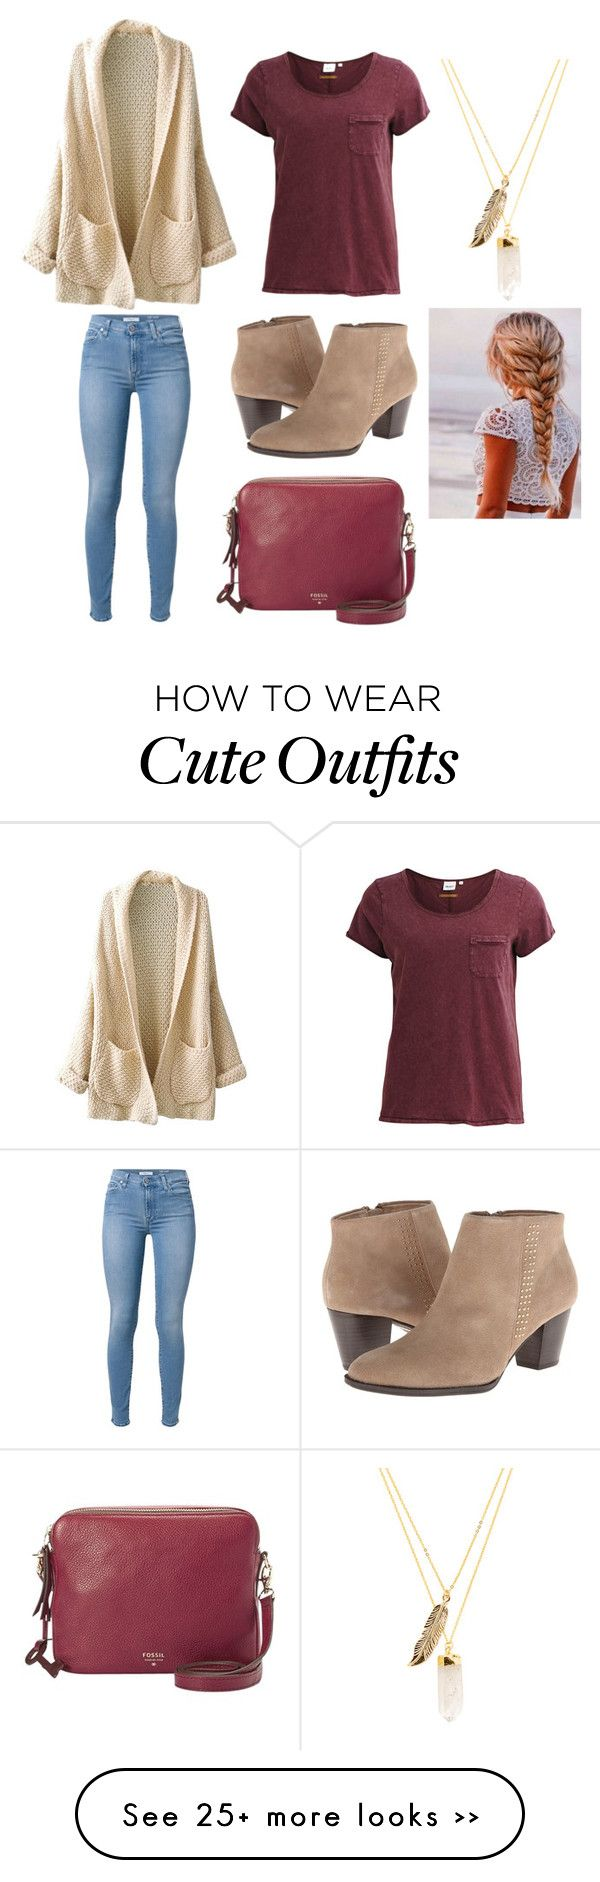 """Maroon outfit!"" by lakenj on Polyvore featuring Object Collectors Item, 7 For All Mankind, Privileged and FOSSIL"